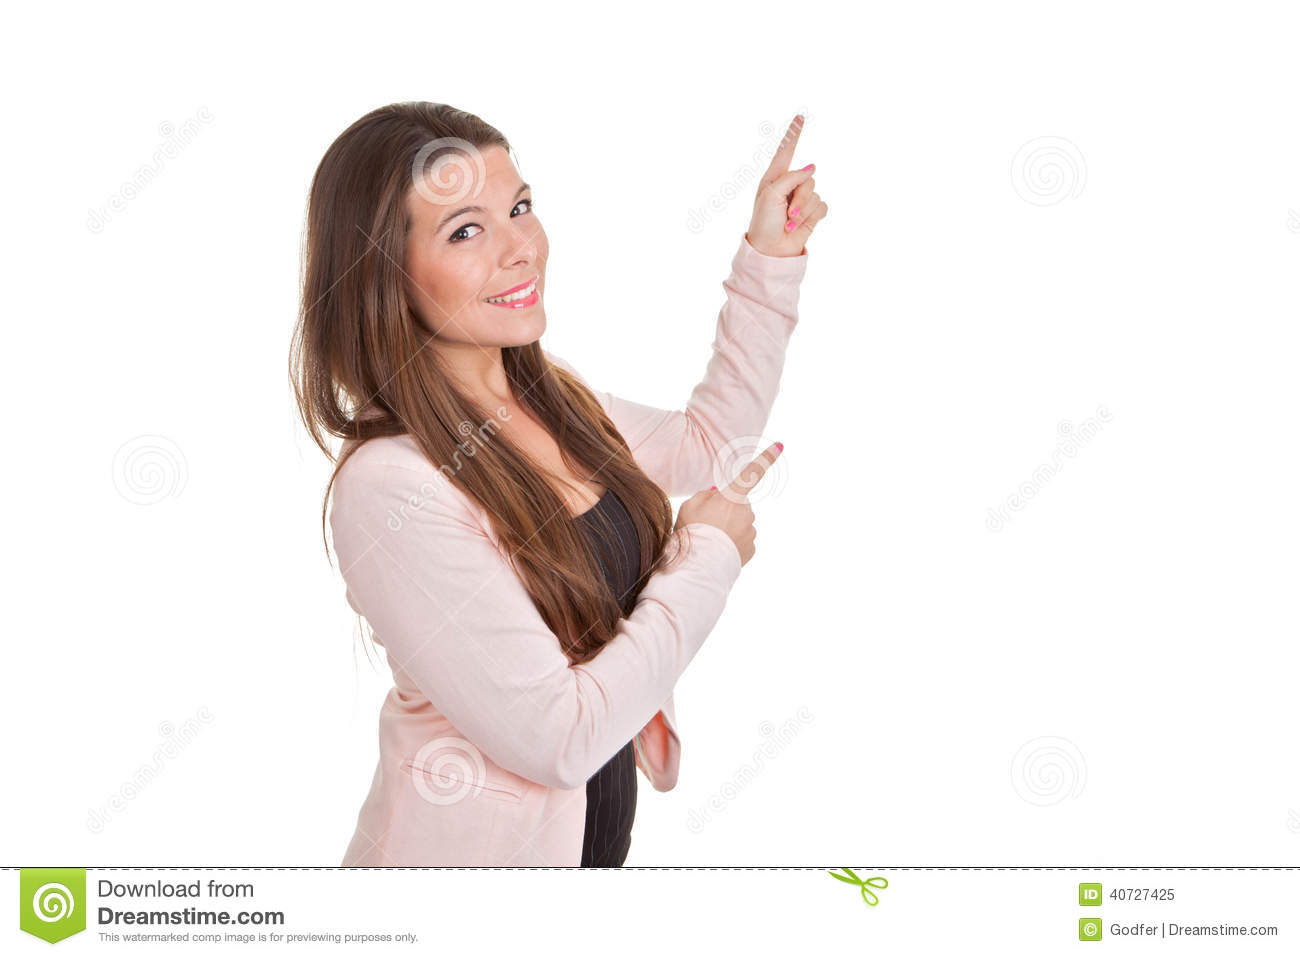 Royalty Free Stock Photo Business Woman Teacher Pointing Showing Demonstrating Image40727425 also Best Free Business Card Psd Templates also Educational Plan Tour A Narrative Report also Weekly Lesson Plan Template Doc 1400 besides Details. on teacher business card design